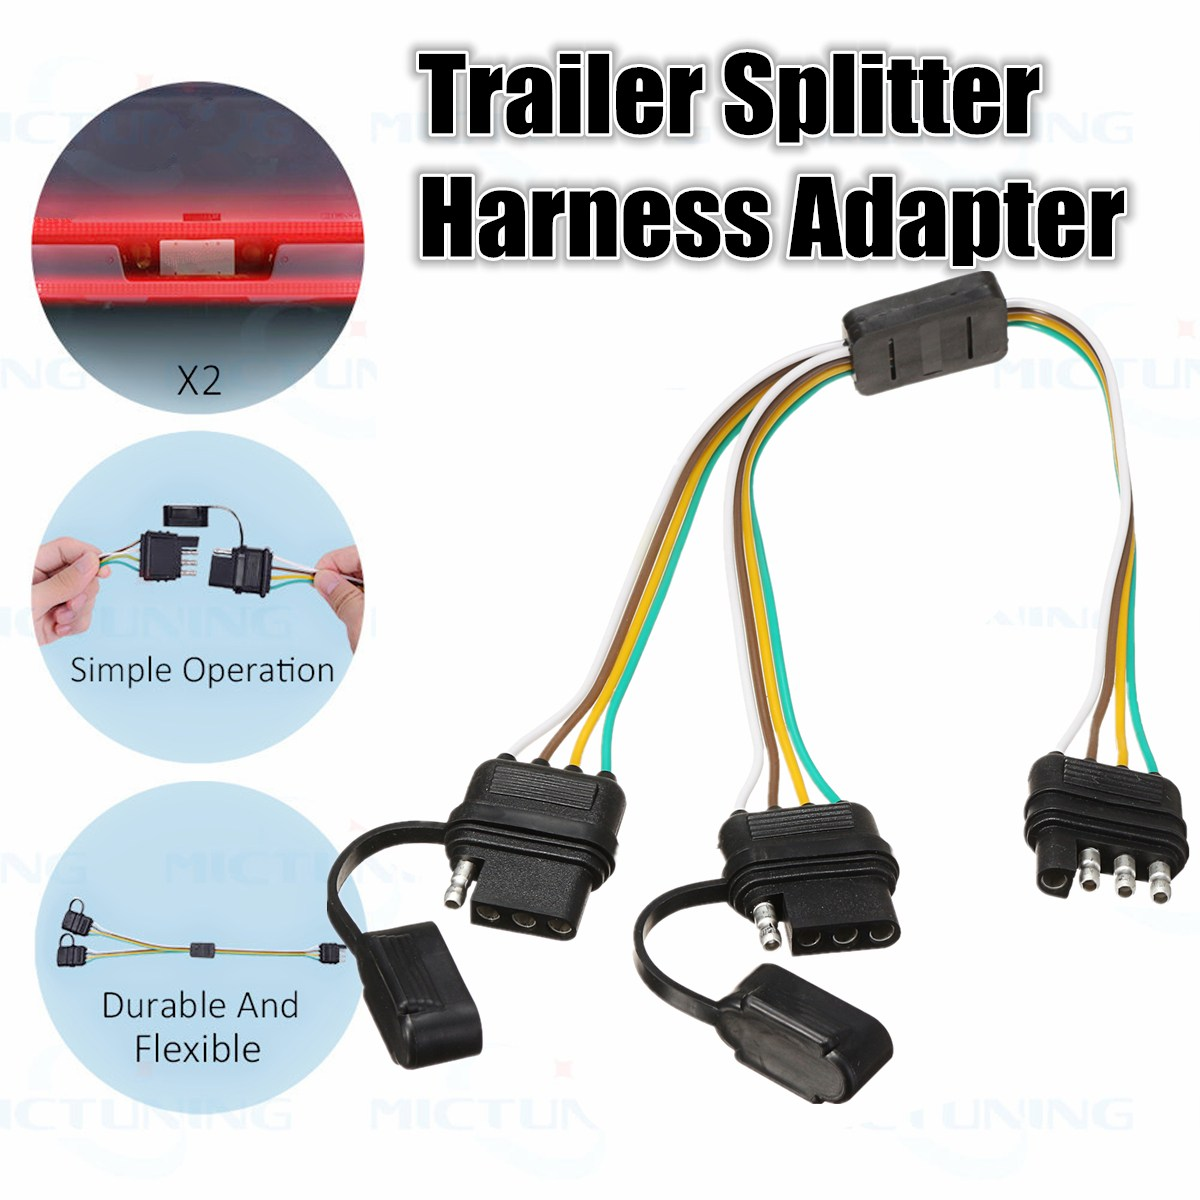 4 Pin 12v Us Trailer Hitch Wiring Tow Harness Power Controller Plug Marker Lights Kroak 2 Manier Splitter Y Split Bedrading Adapter Voor Led Achterklep Bar